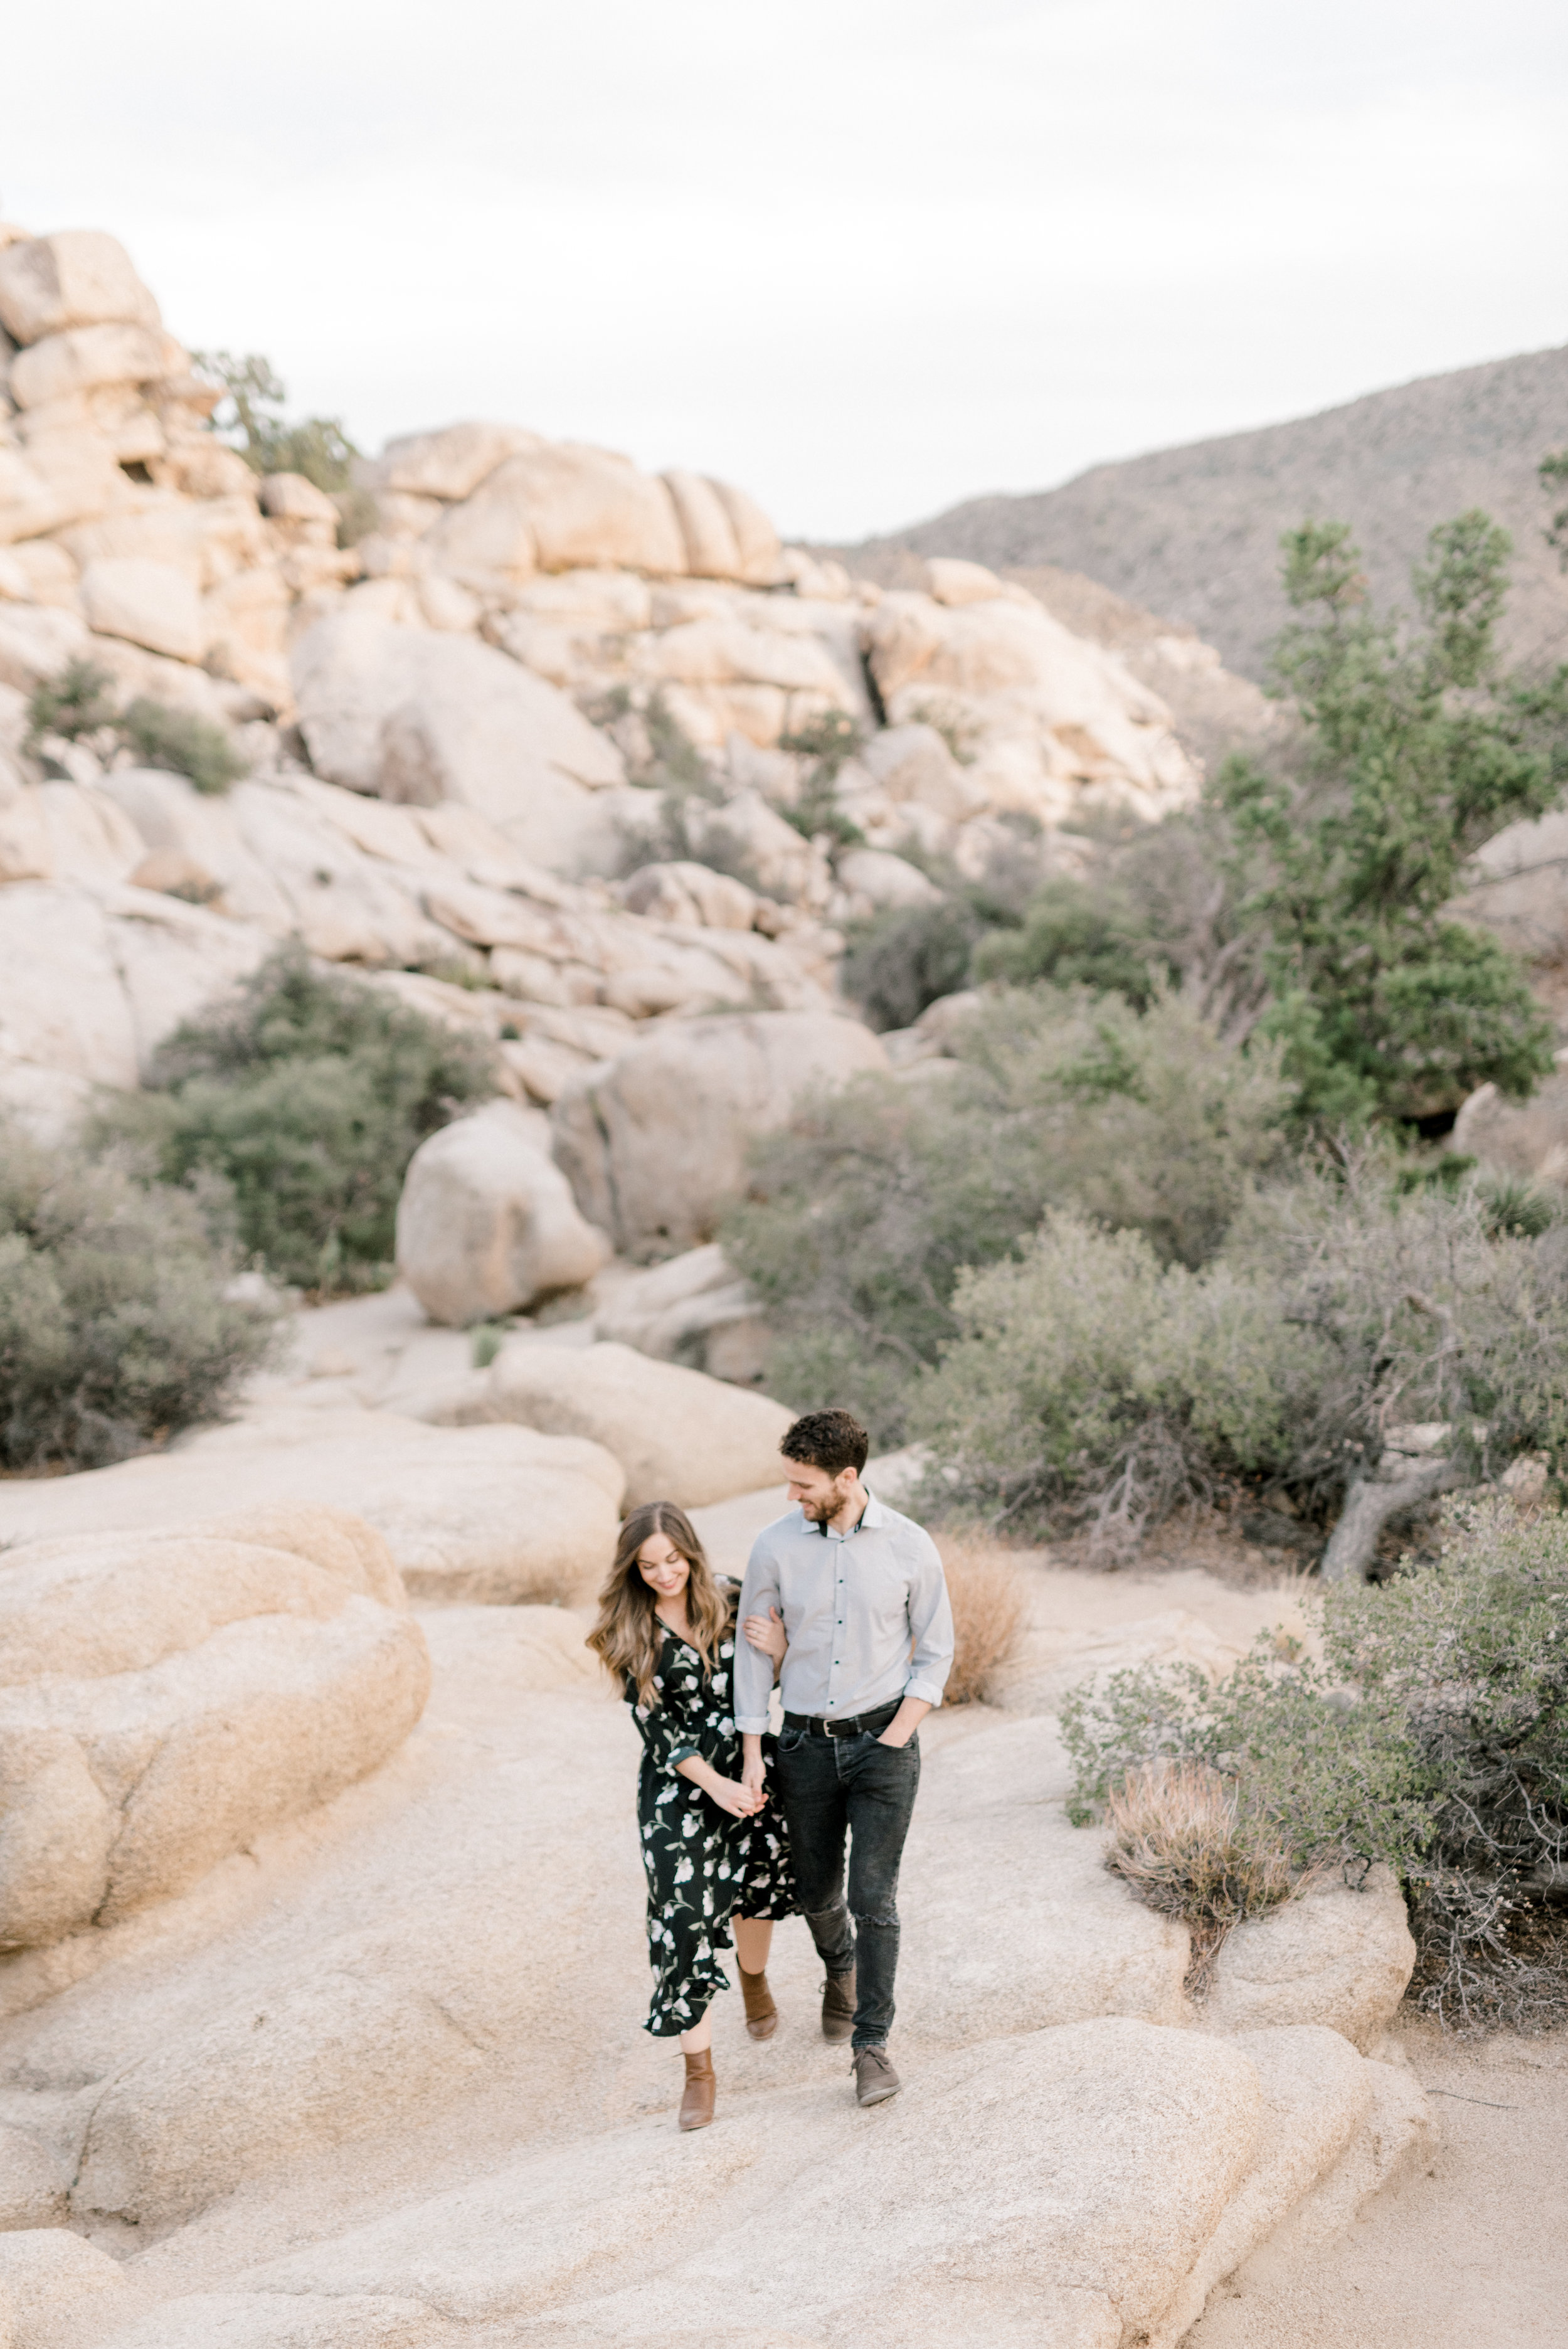 We love the rocky landscape from this free-spirited desert engagement session in Joshue Tree and these two walking hand in hand.